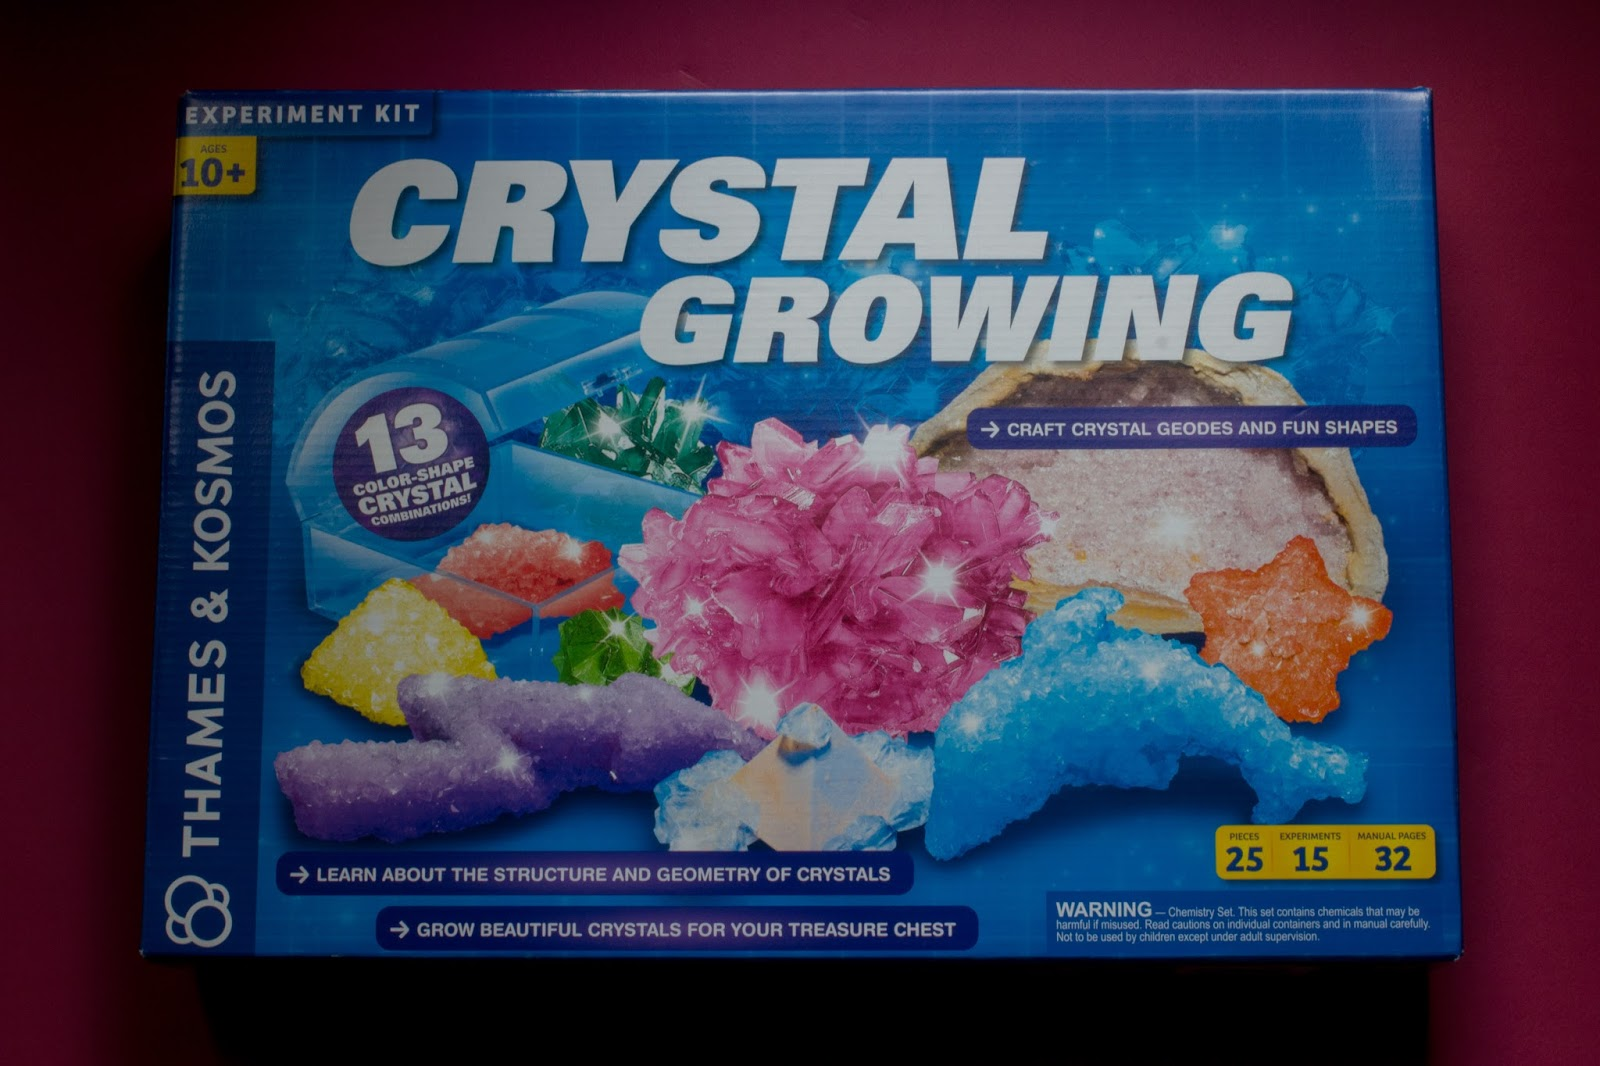 The packaging of a crystal growing kit recommended for age 10 plus gifted from PrezzyBox